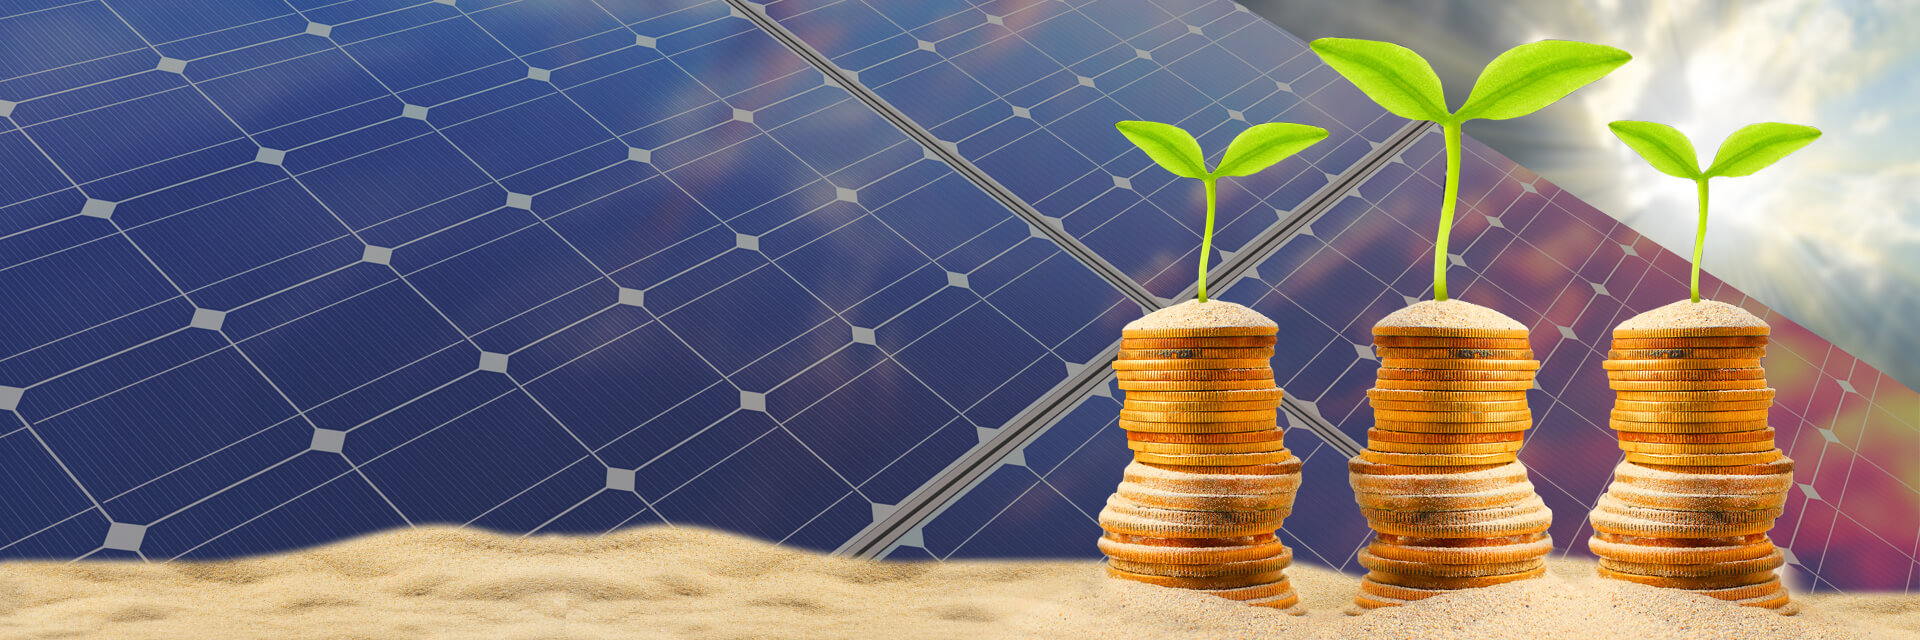 Commercial solar panel financing